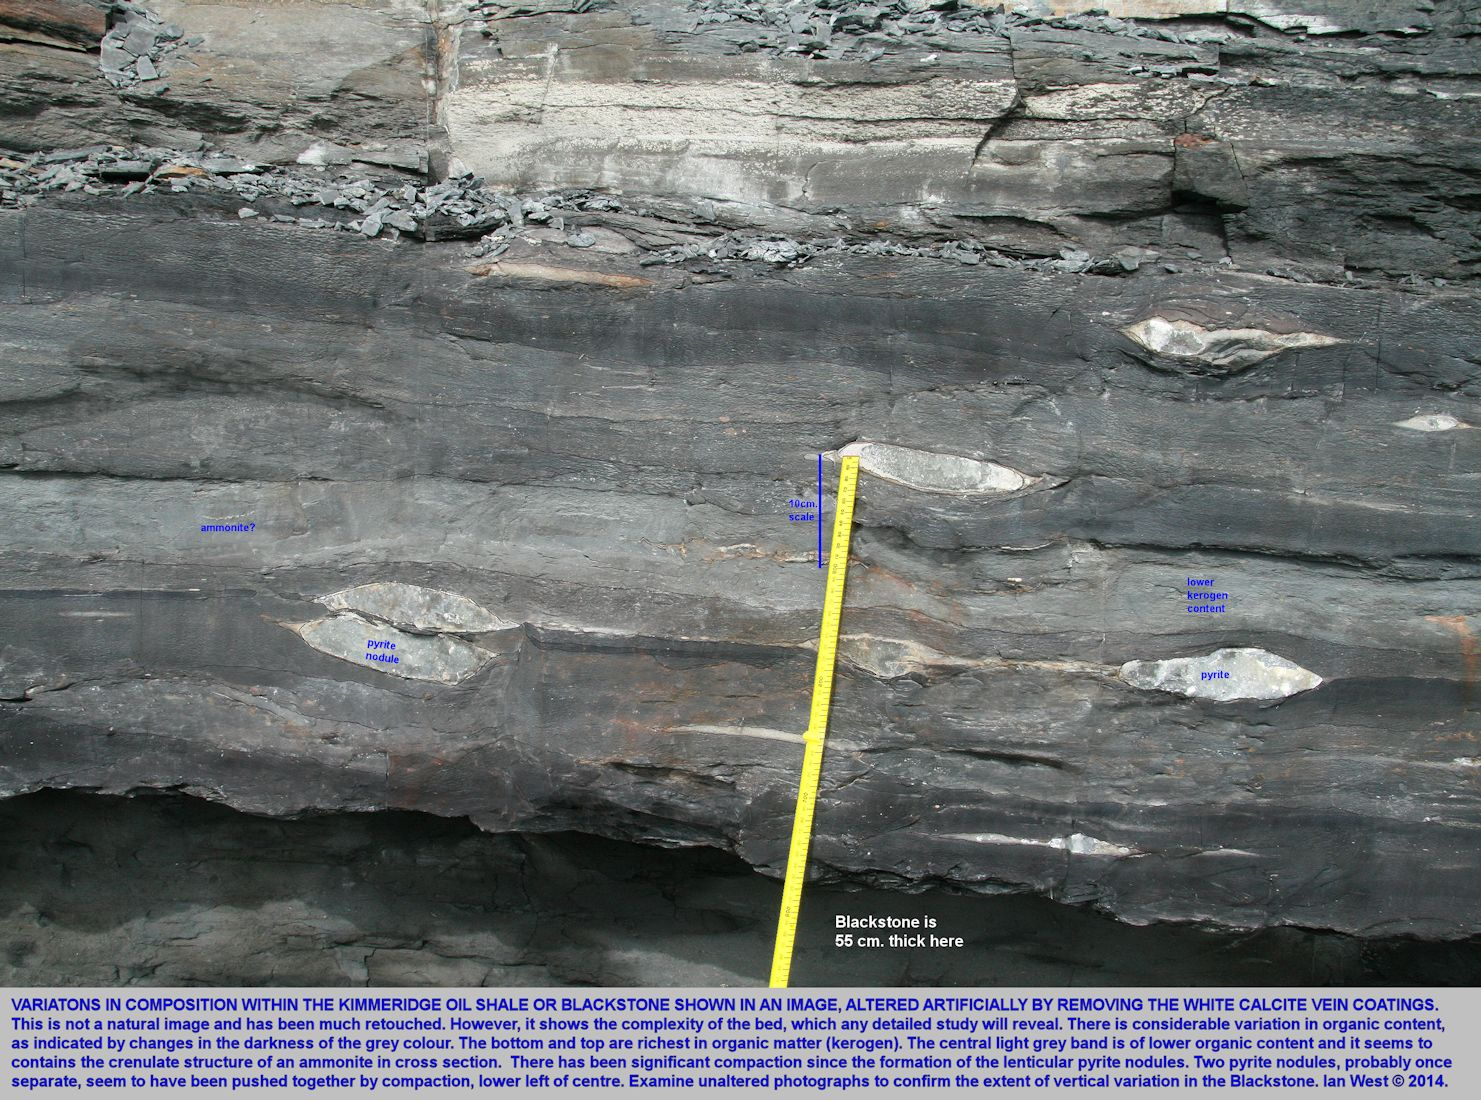 The Kimmeridge Blackstone or Kimmeridge Oil Shale, shown with colour variations emphasised and surface calcite artificially removed from the photograph, 2014; compare with unaltered images